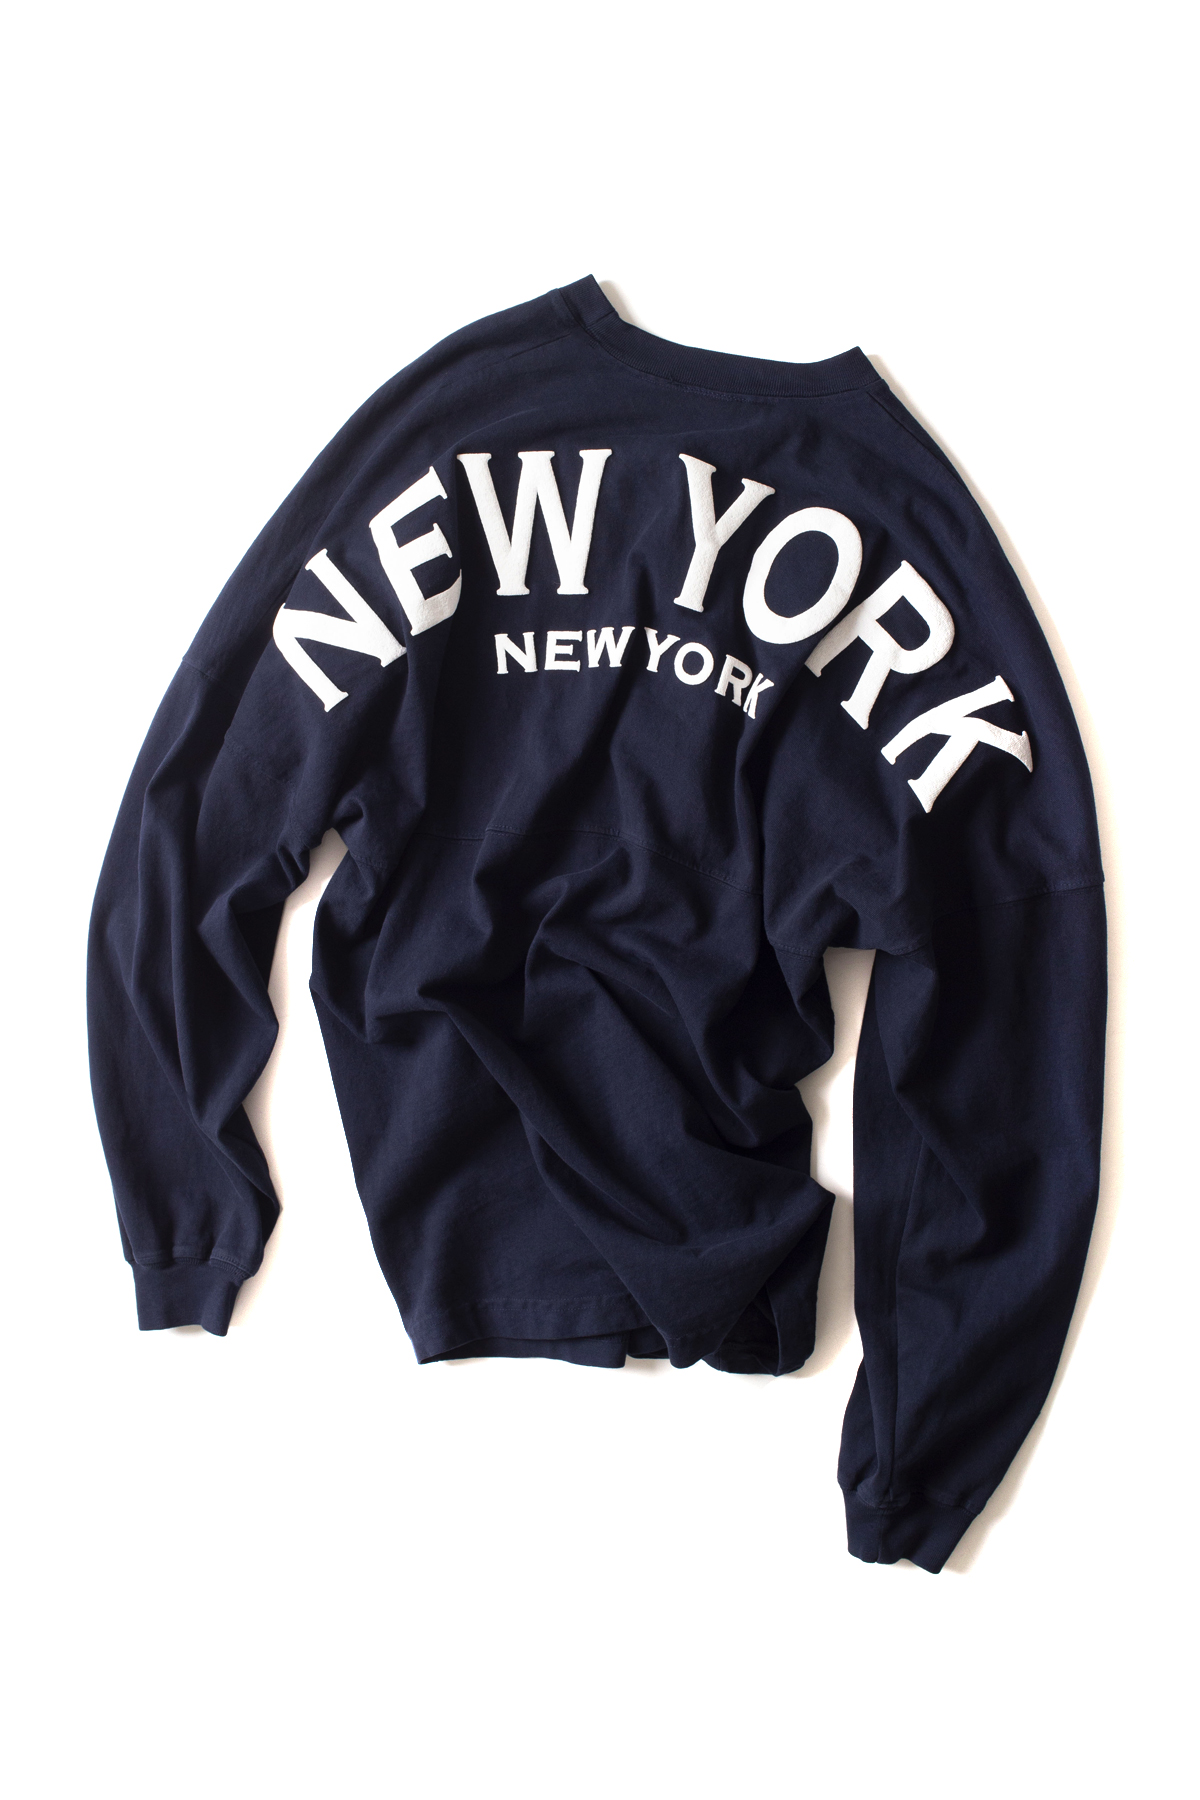 Spirit Jersey : Original Crew Neck Spirit Jersey (New York / Navy)